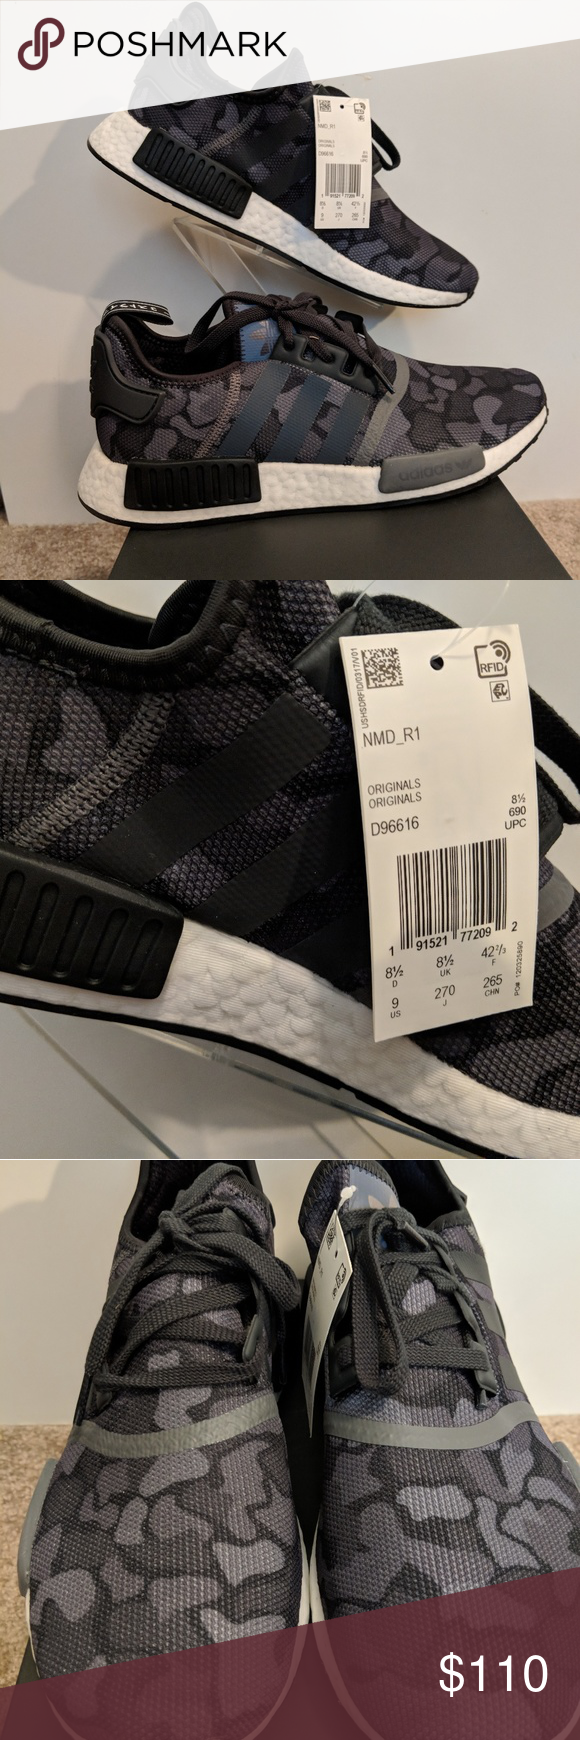 4d607dd19 Adidas NMD R1 Dark Camo Core Black Grey Grey D9661 New With Box! Adidas NMD  R1 Dark Camo Core Black Grey Grey D96616 adidas Shoes Sneakers